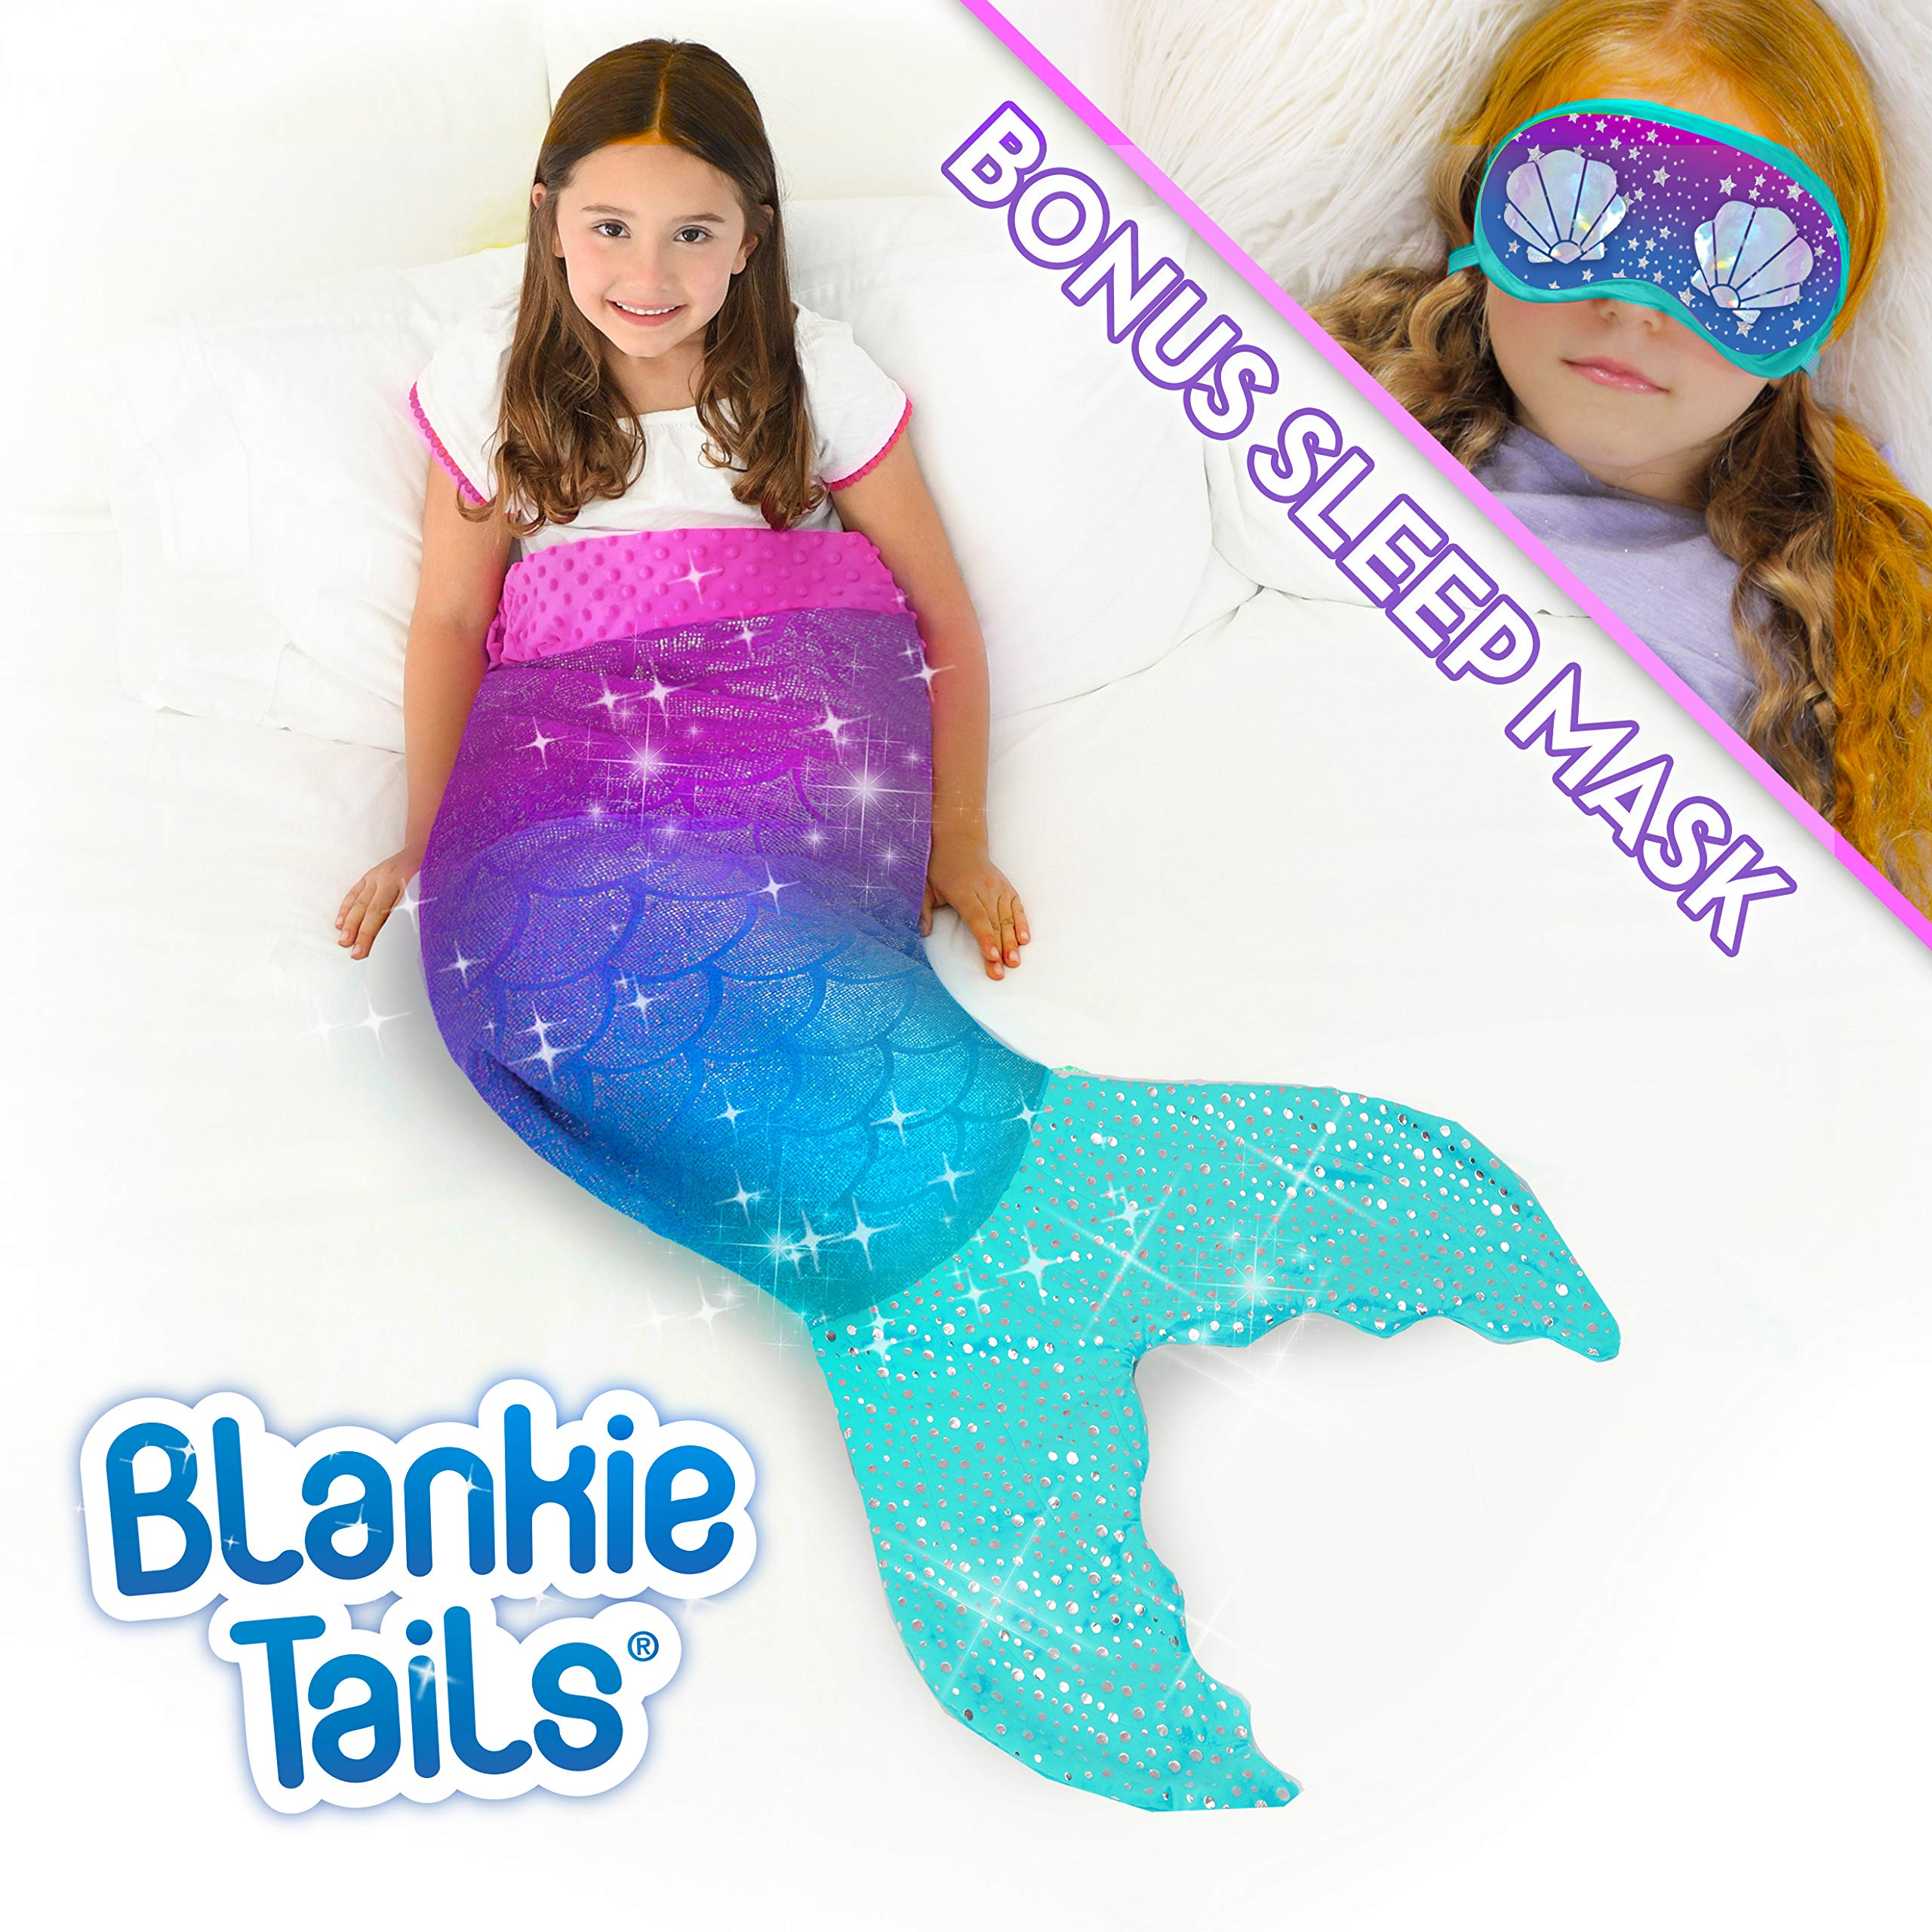 Blankie Tails Mermaid Tail Blanket with Bonus Sleep Mask Gift Set - Glitter Sparkle Purple/Aqua Ombre Mermaid Blanket-Double-Sided Minky Fleece Kids Size Mermaid Tail Wearable Blanket by Blankie Tails